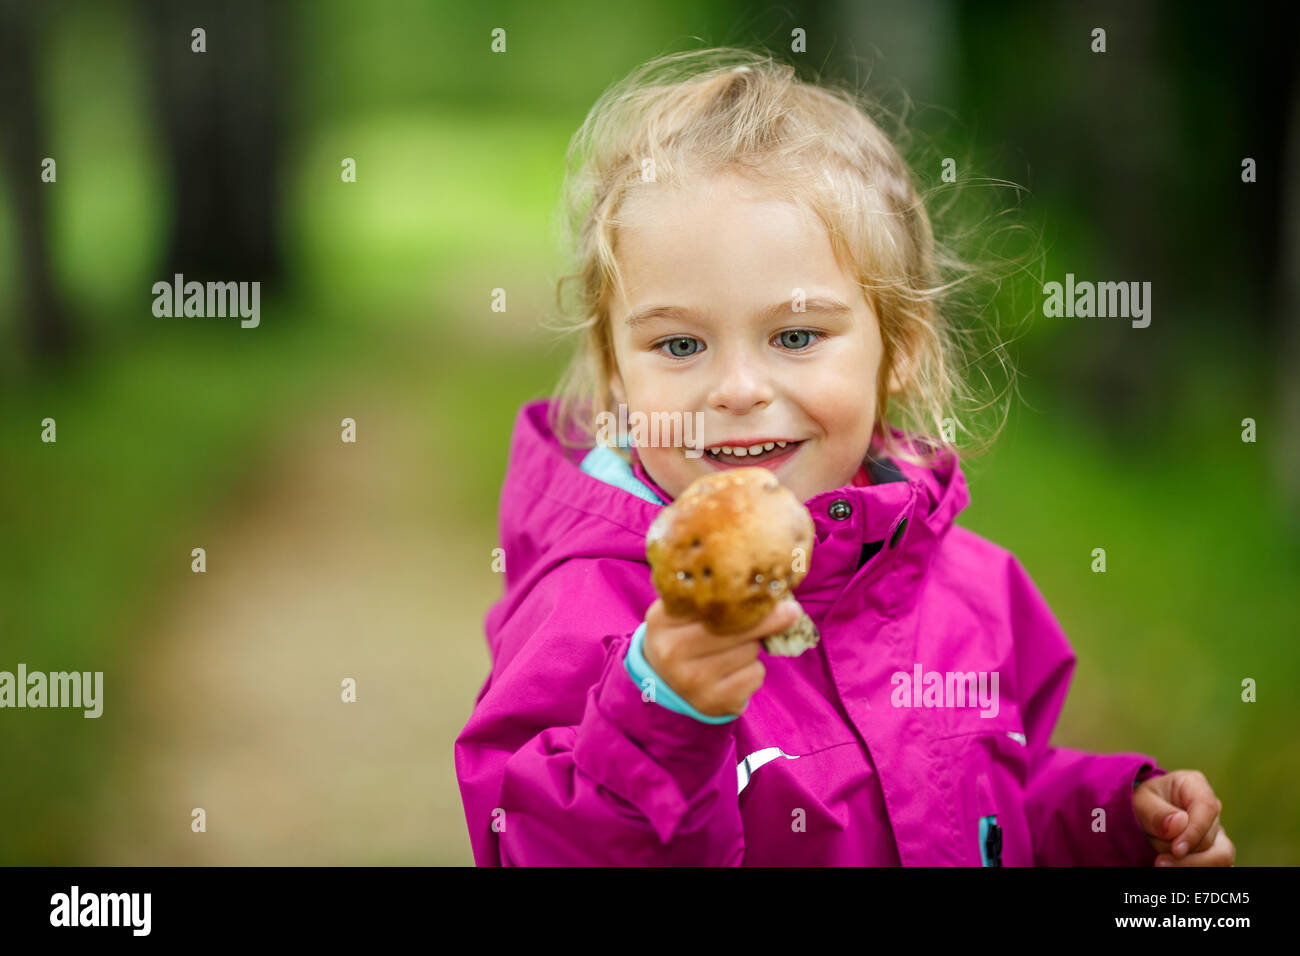 Happy little girl with a mushroom - Stock Image